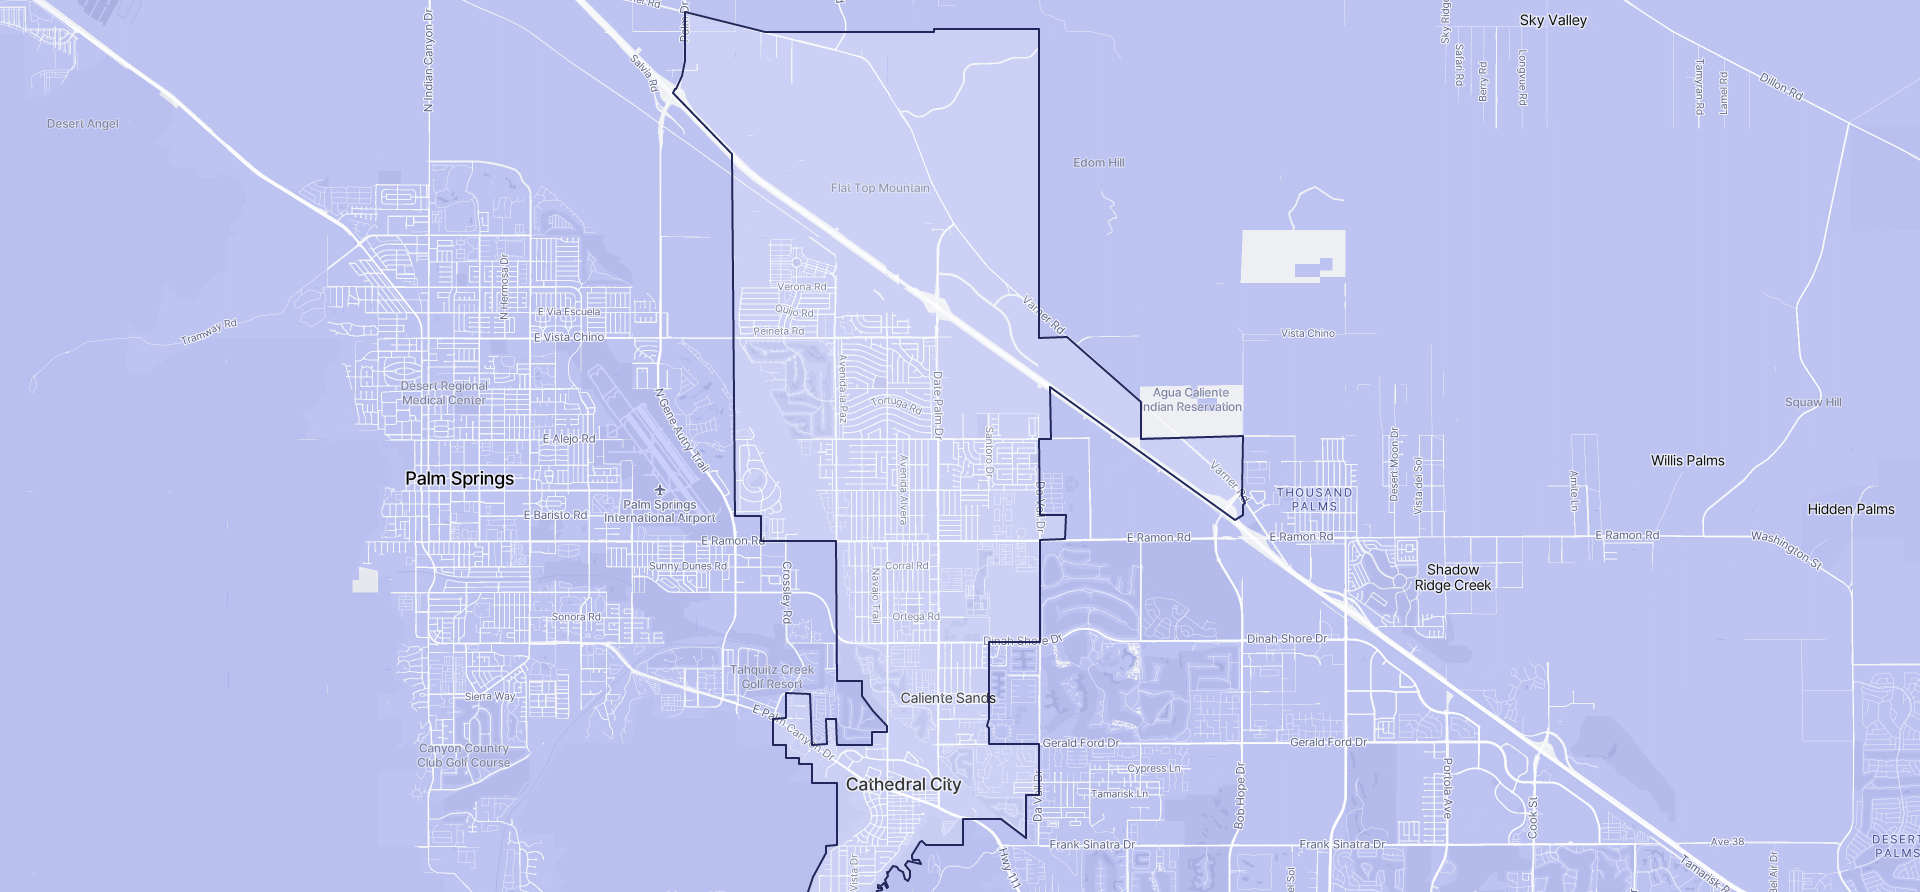 Image of Cathedral City boundaries on a map.